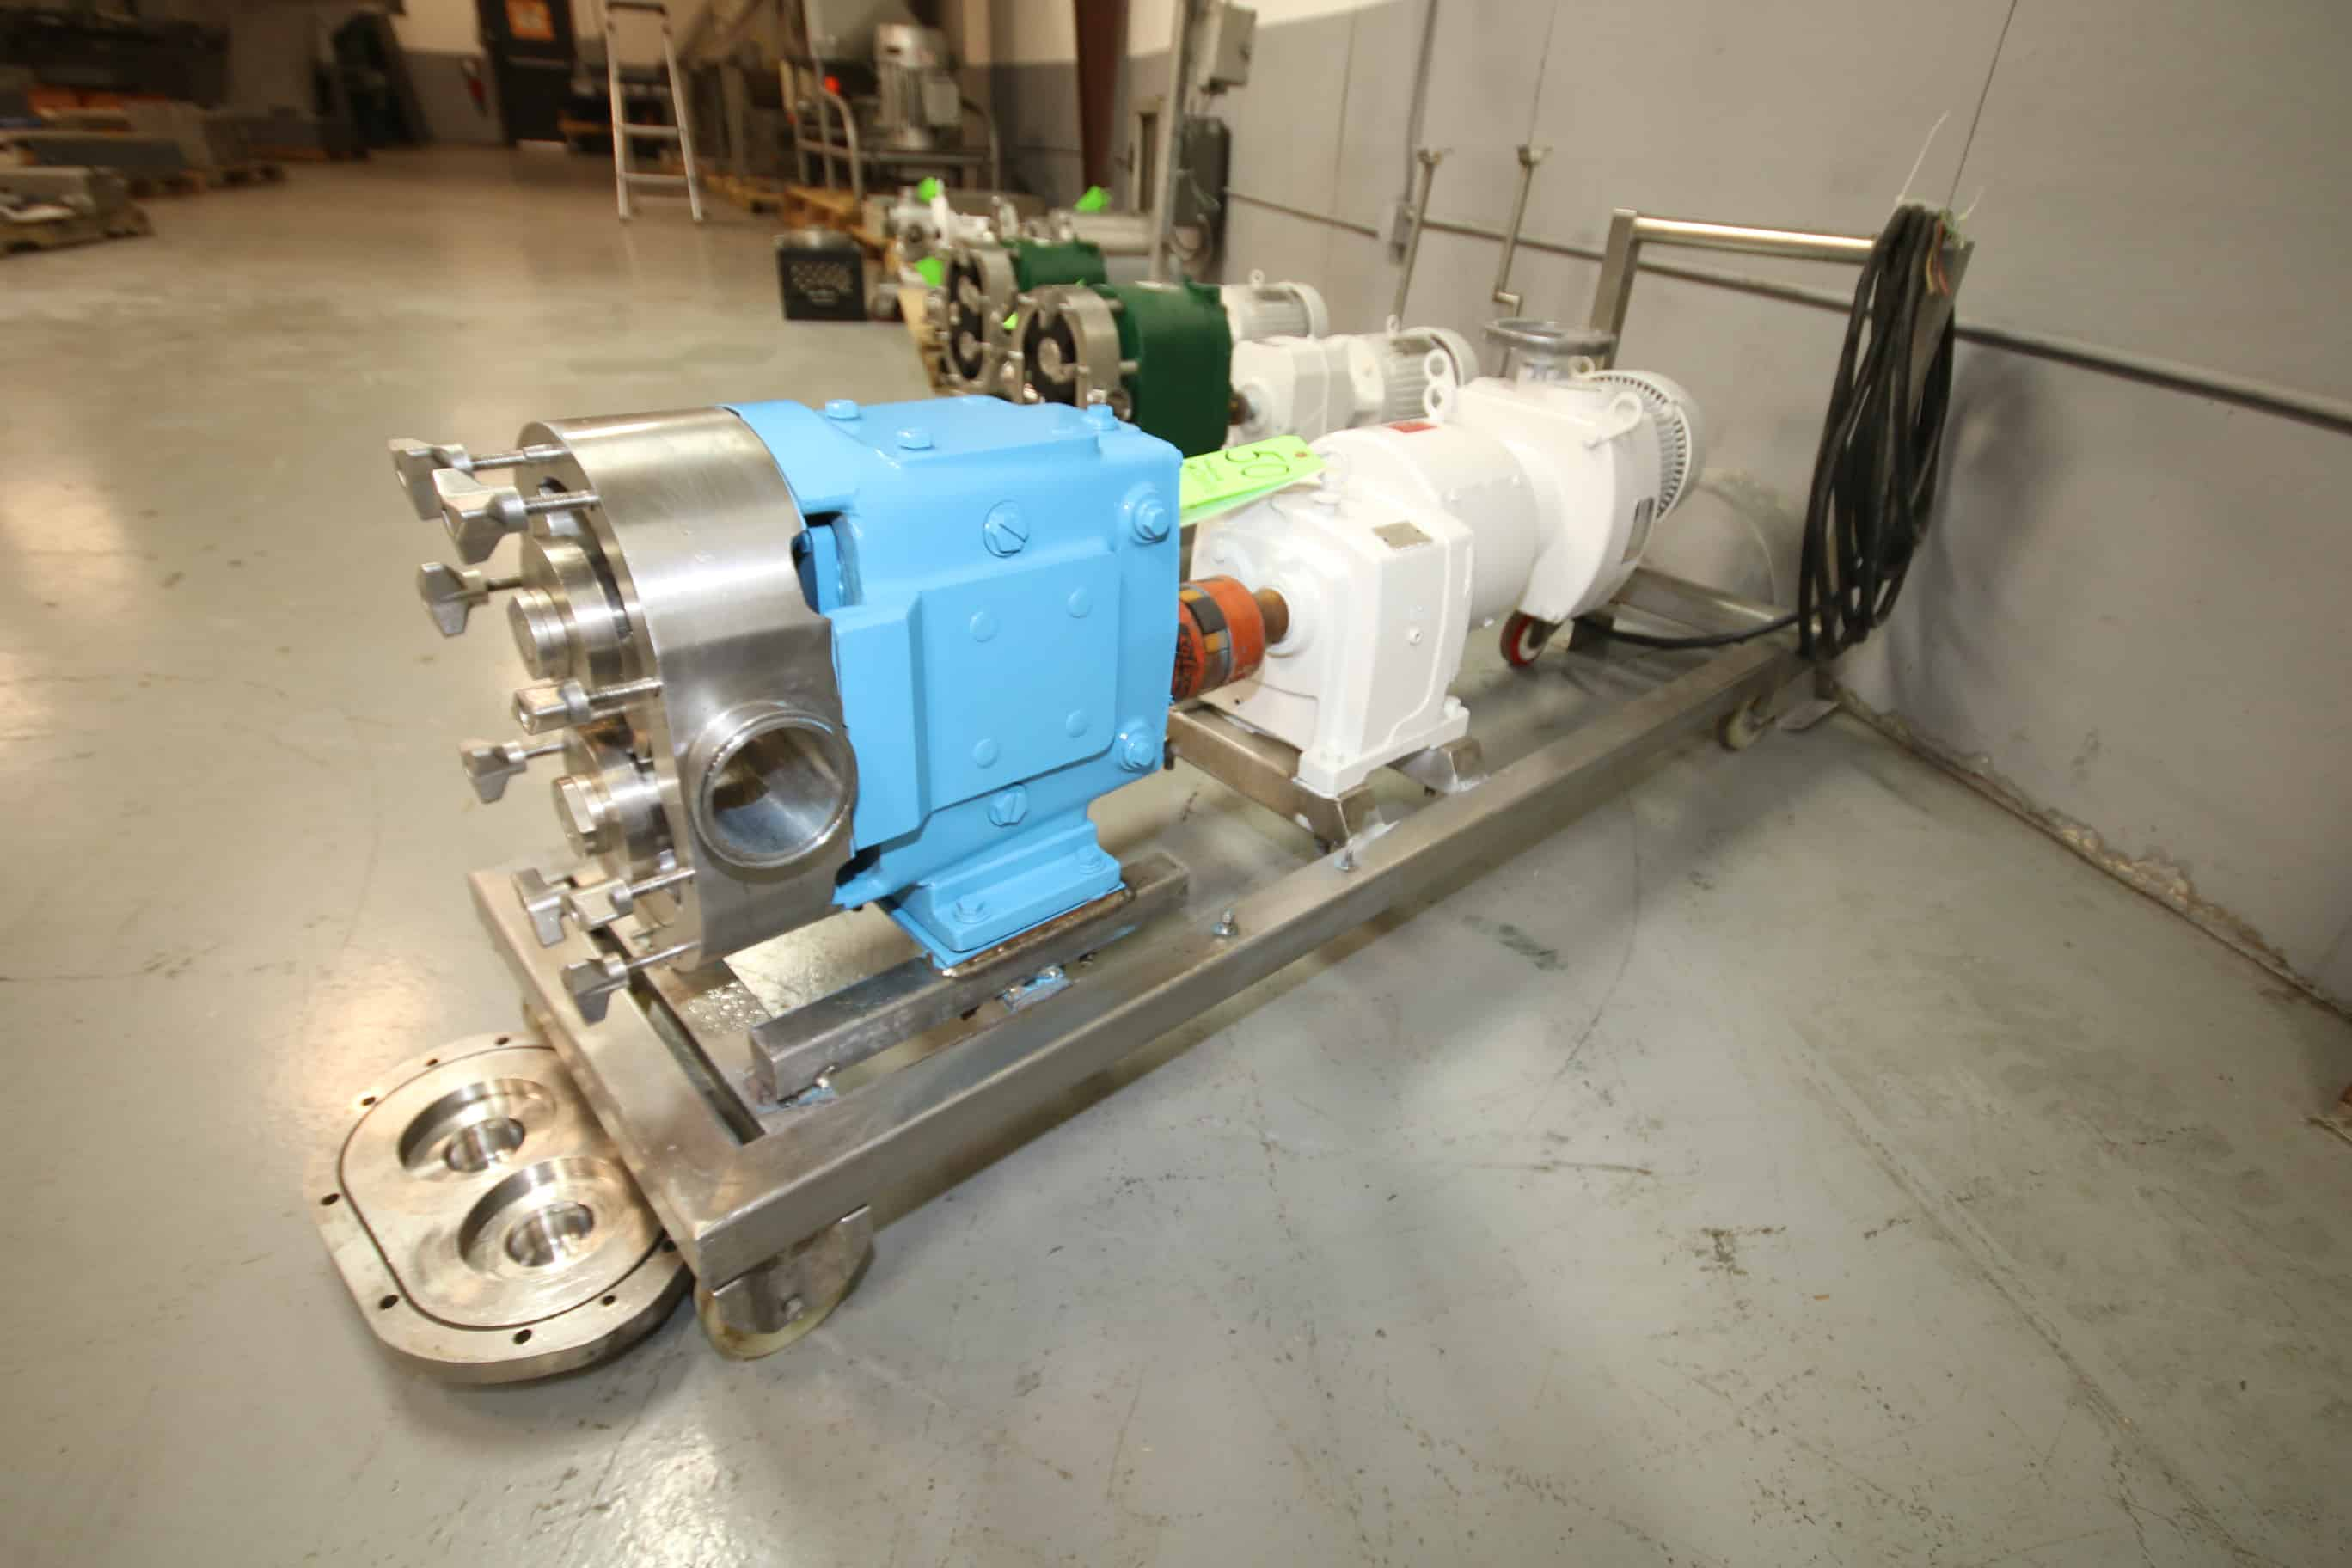 "Waukesha/Cherry Burrell Positive Displacement Pump, Model 130 with 3"" x 3"" Clamp Type S/S Head, U.S. Electrical 10.2 hp Gear Head, Gear Ratio 5.06, U.S. Electrical 5 hp Variable Speed Drive, 230/460 V, 3 Phase, Mounted on Portable S/S Frame"